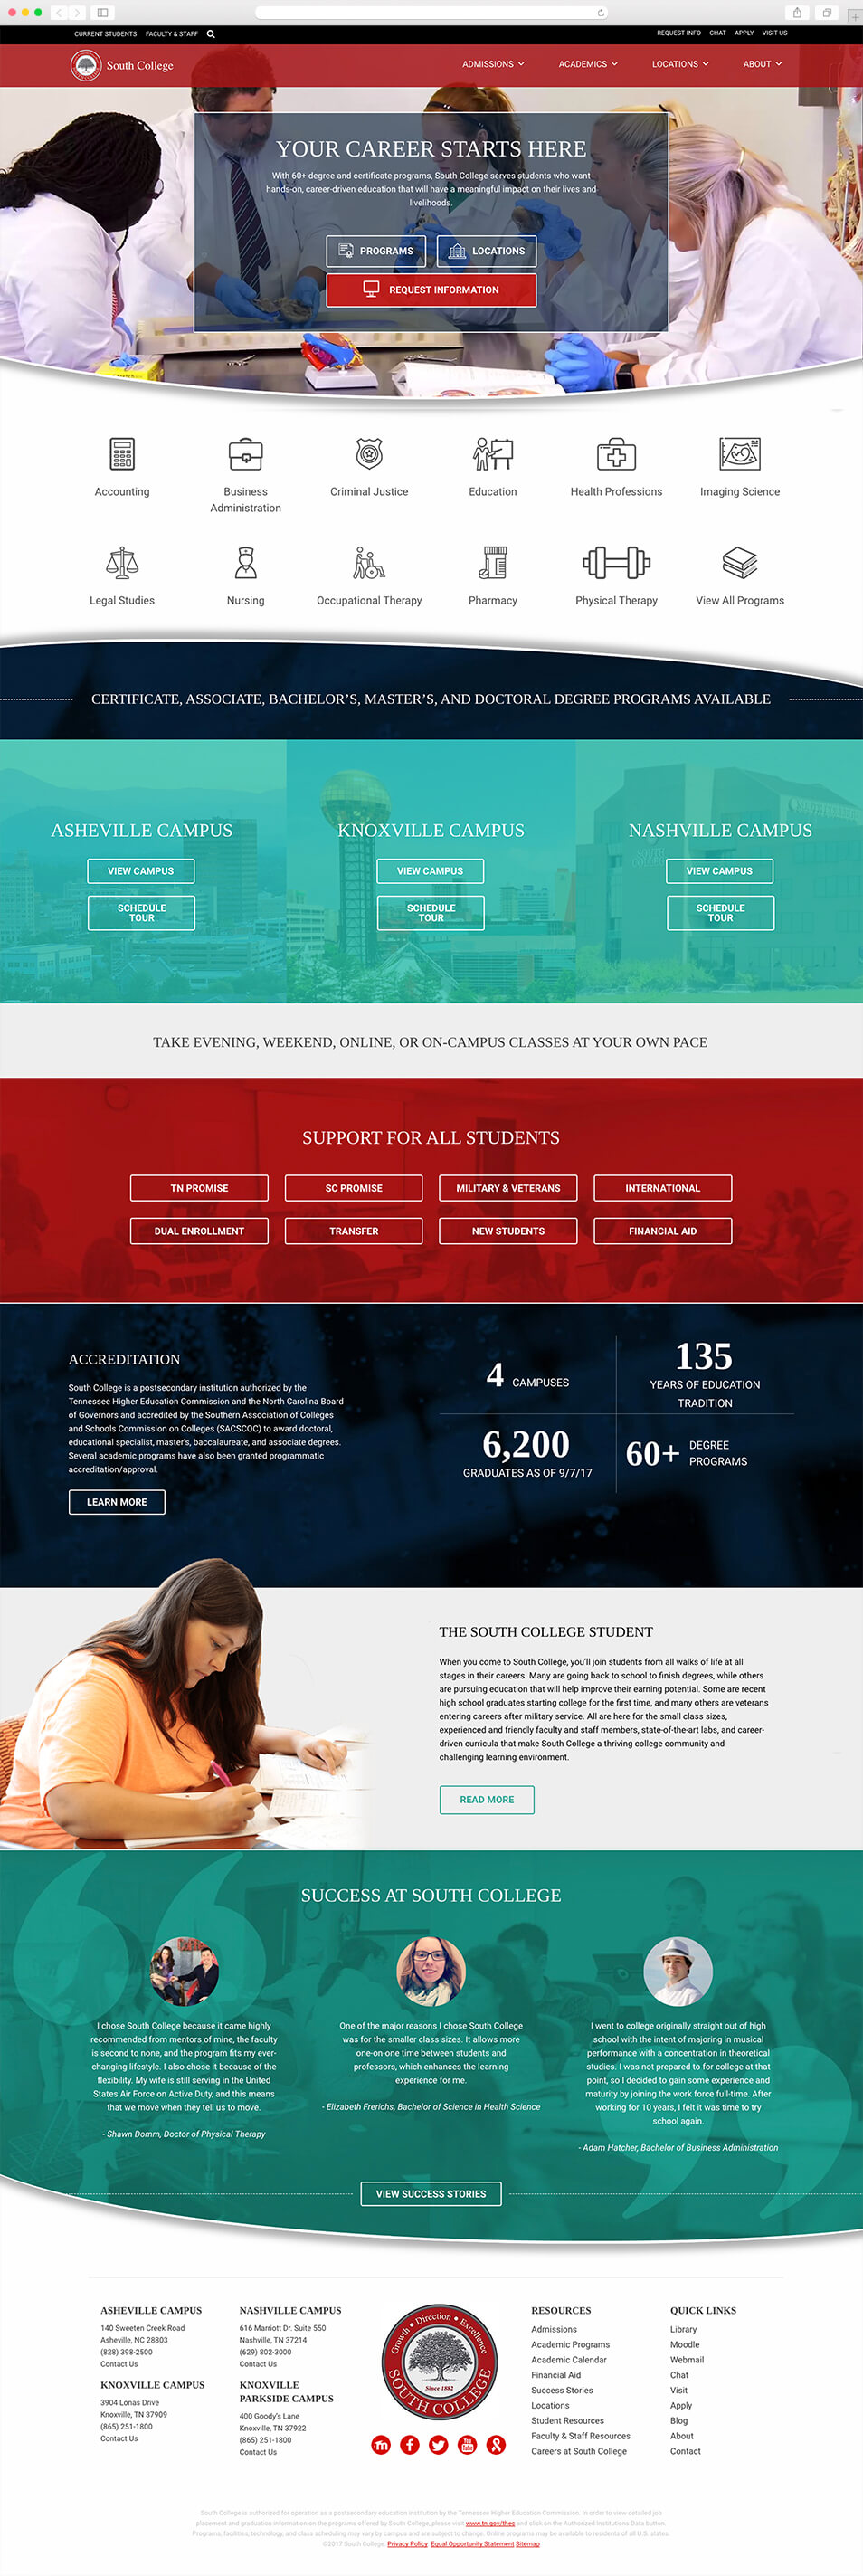 South College Website Design & Growth-Driven Marketing